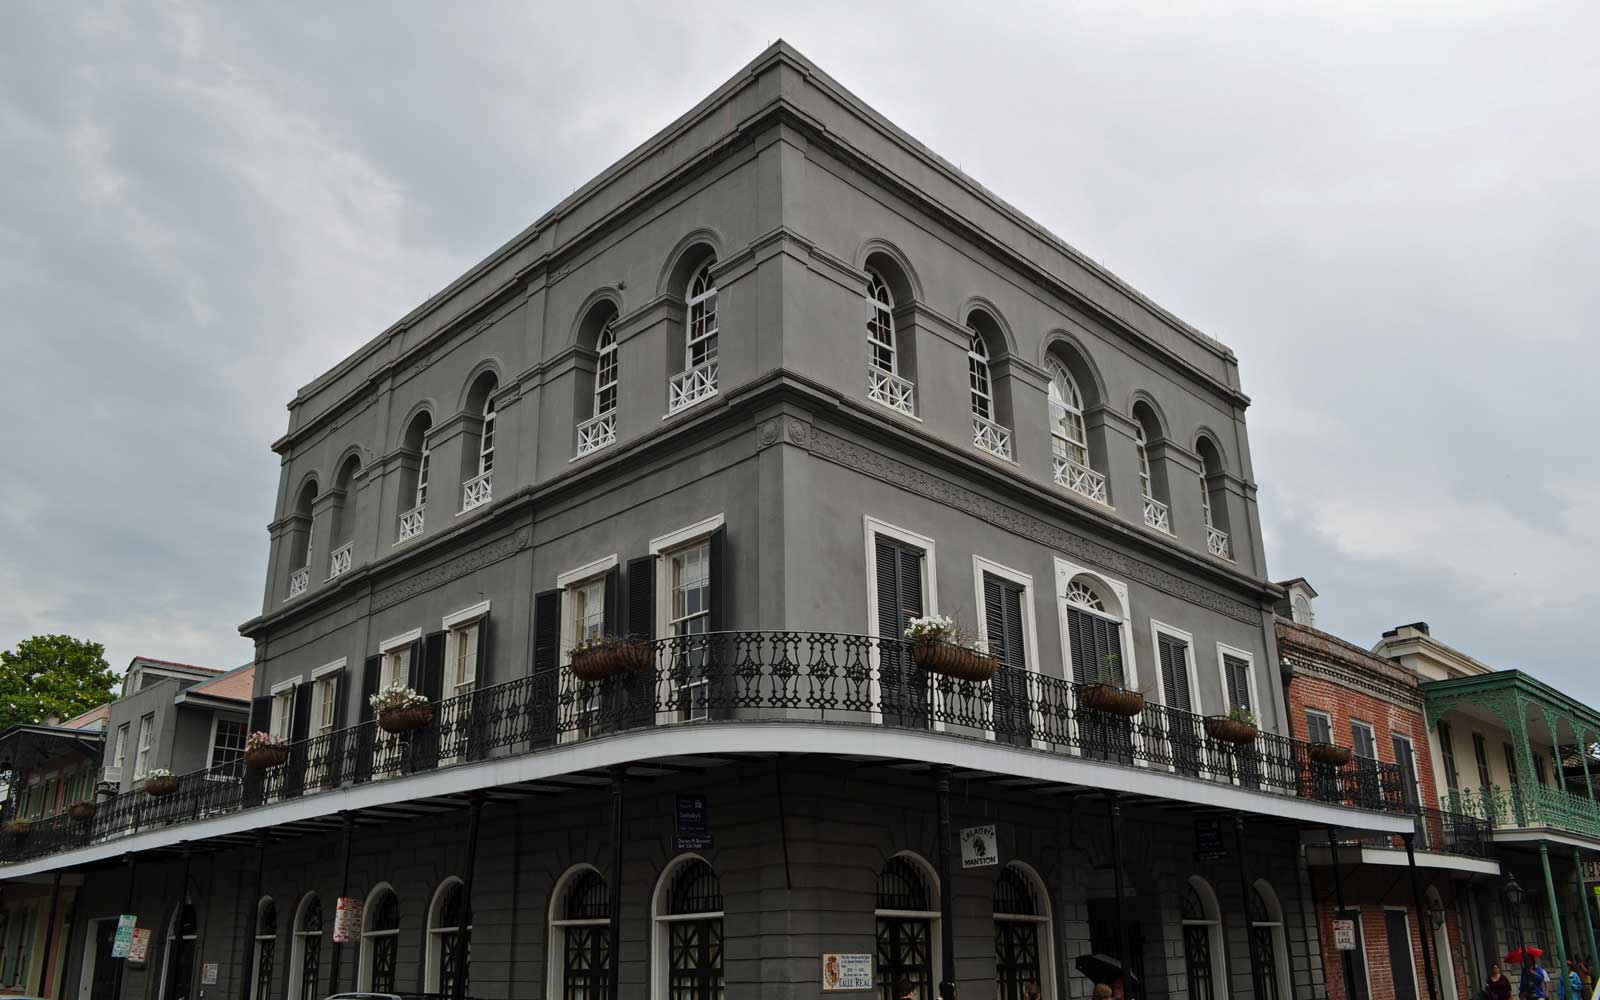 Lalaurie House, one of the most notorious residences in New Orleans